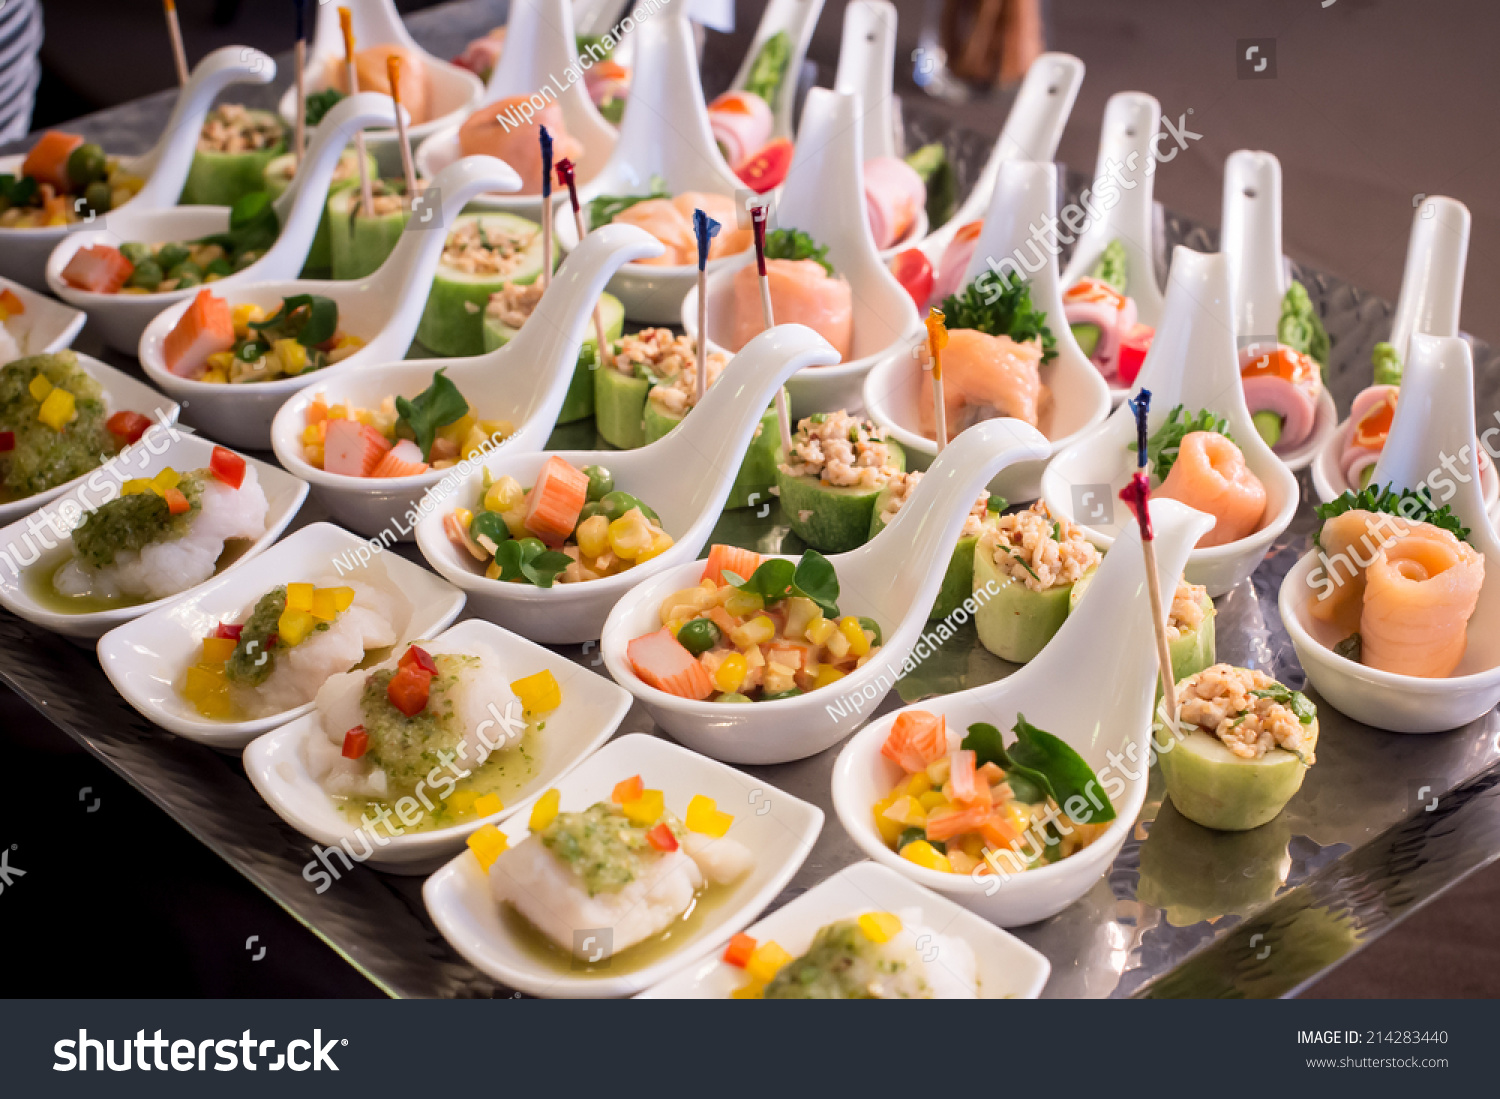 Canapes on toothpicks appetizer pinchos spanish stock for Canape menu ideas